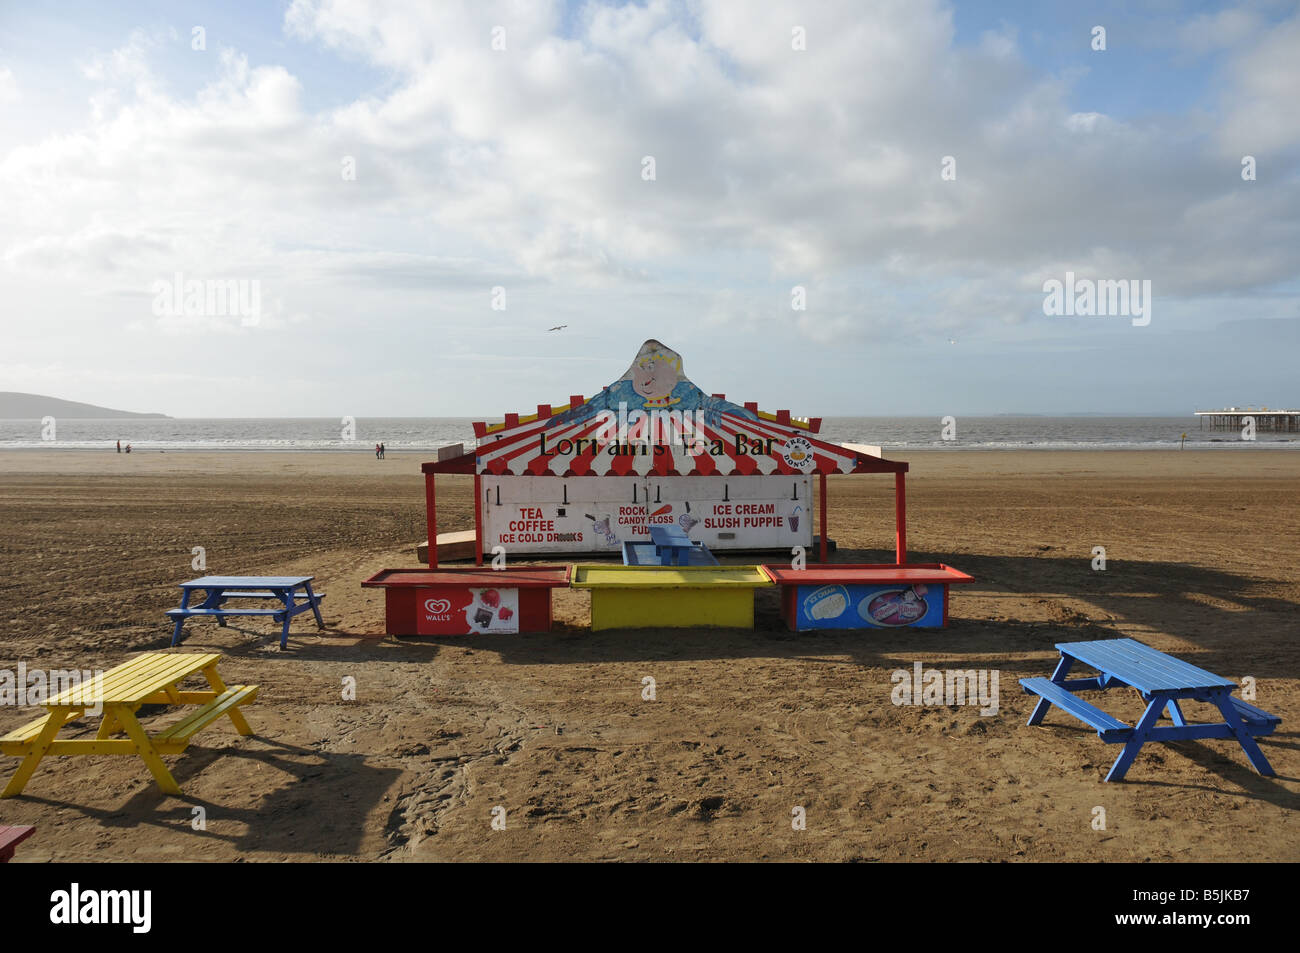 A deserted cafe on a cold autumn afternoon on the beach at the seaside resort of Weston Super Mare. - Stock Image